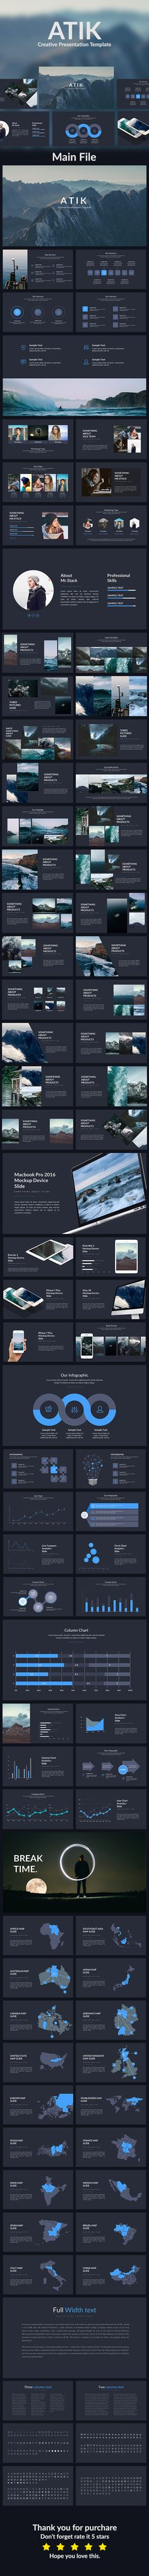 Atik - Creative Powerpoint Template - Creative #PowerPoint #Templates Download here: https://graphicriver.net/item/atik-creative-powerpoint-template/19413636?ref=alena994